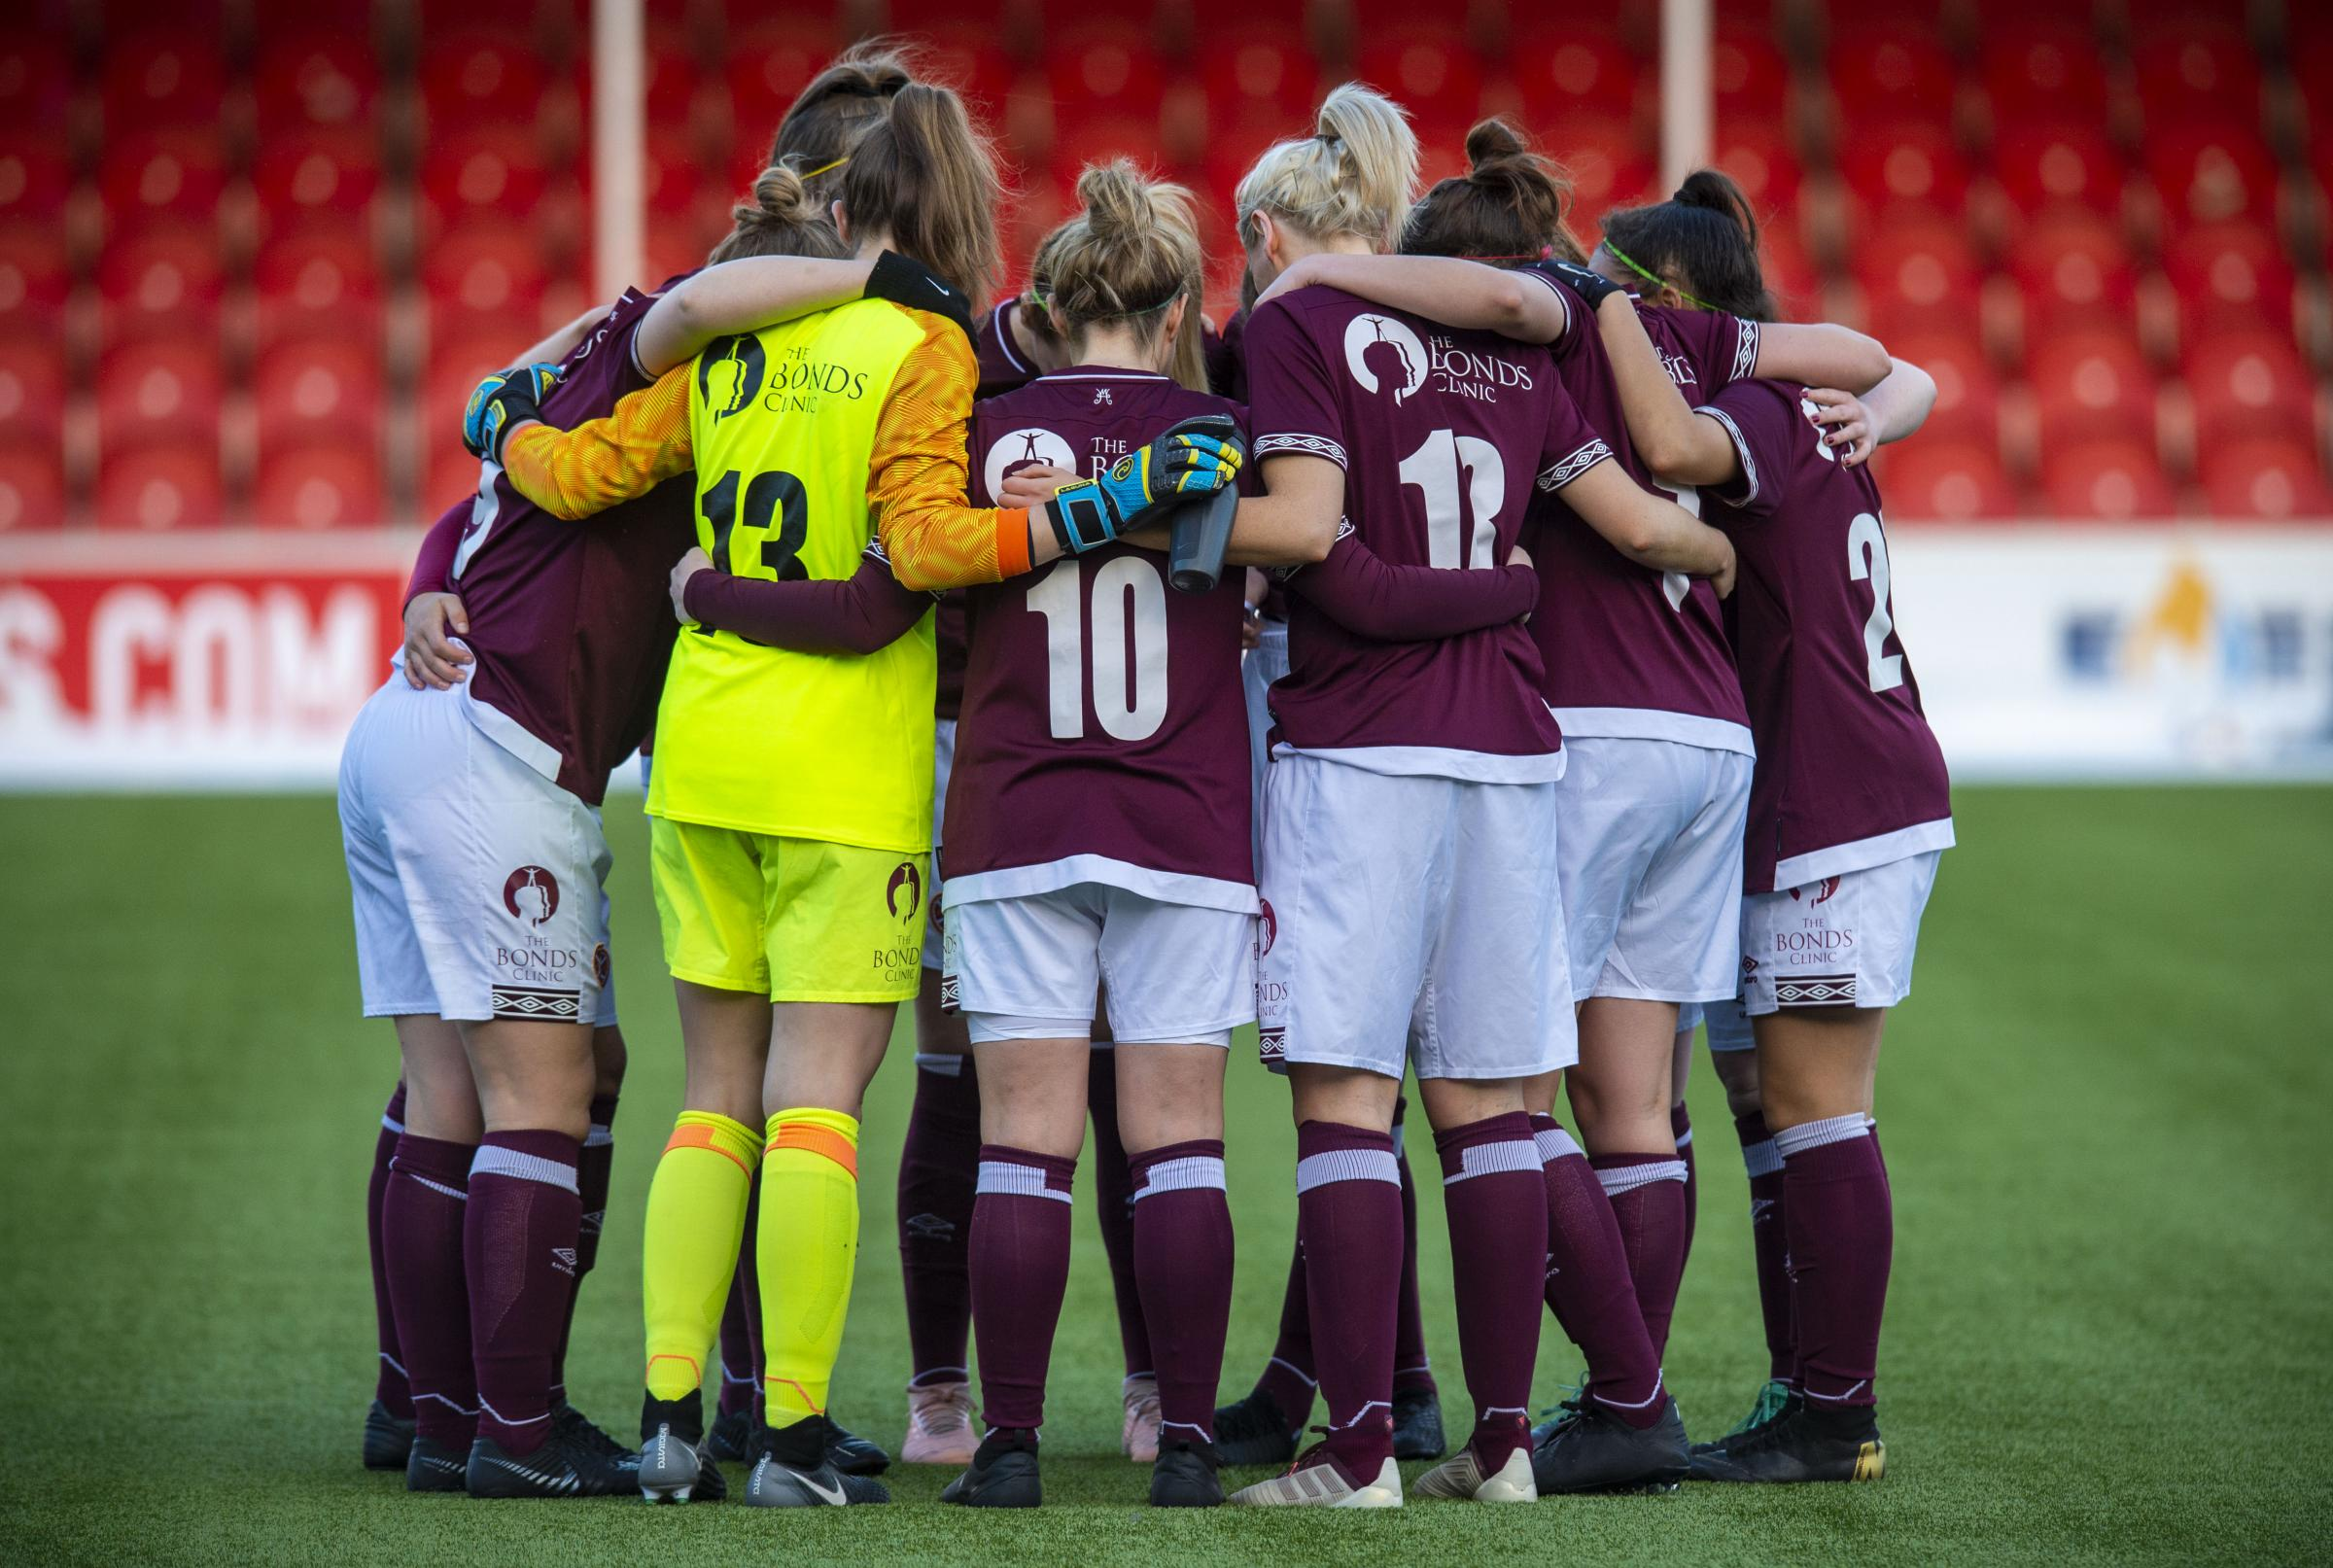 Alan Campbell: Resumption of SWPL will find Hearts in a much improved position from October start